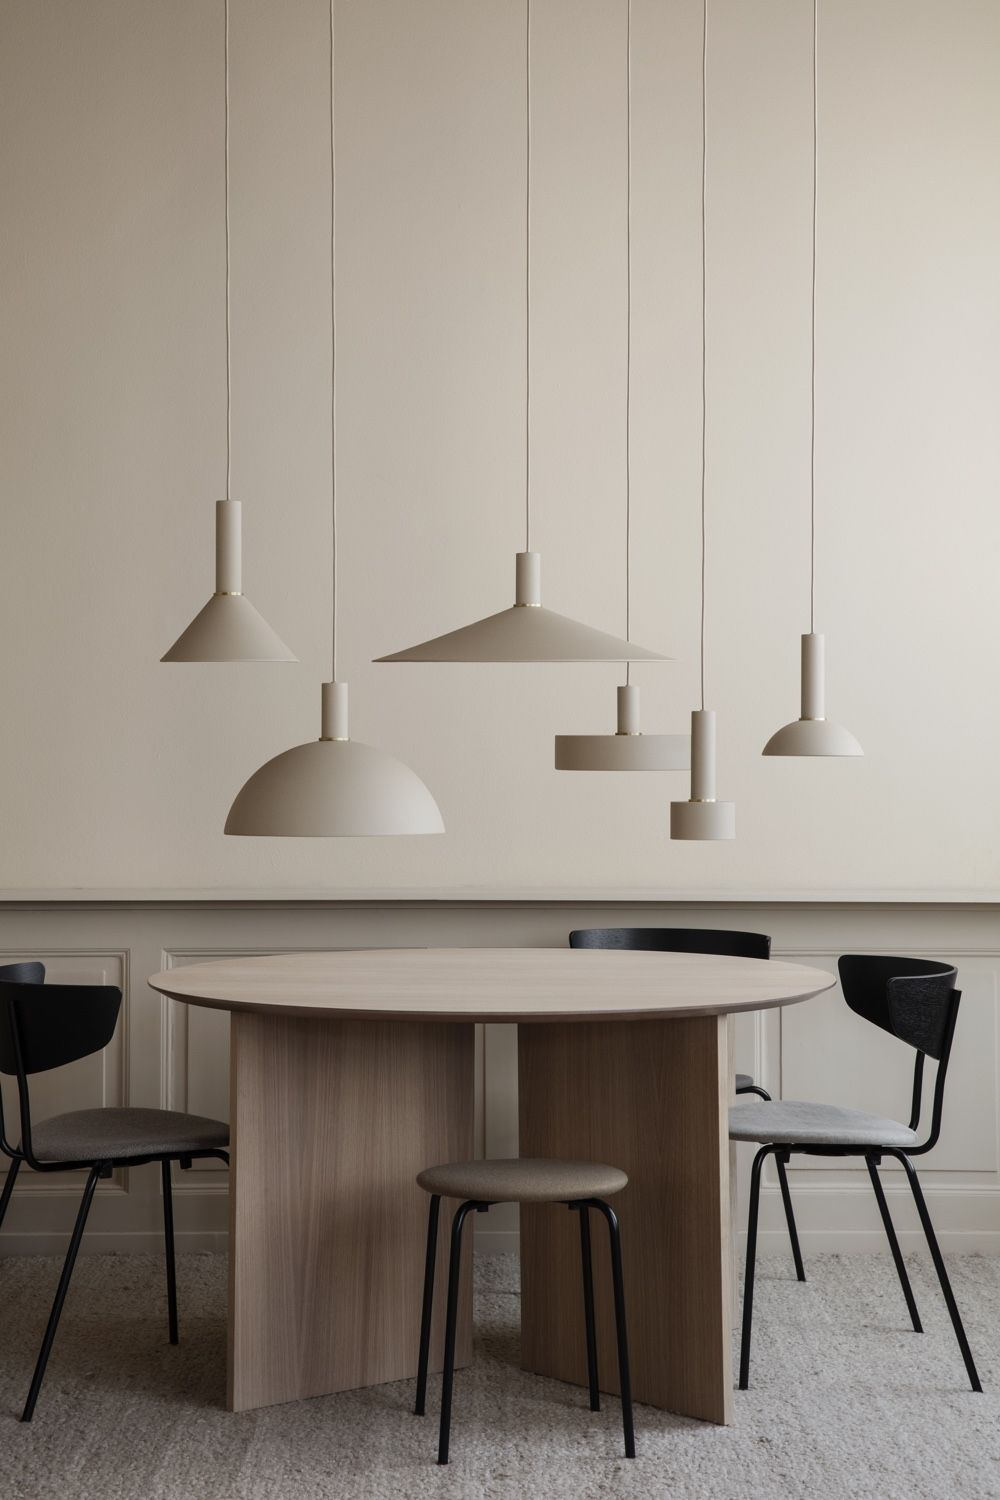 Ferm Living Collect Dome Pendant